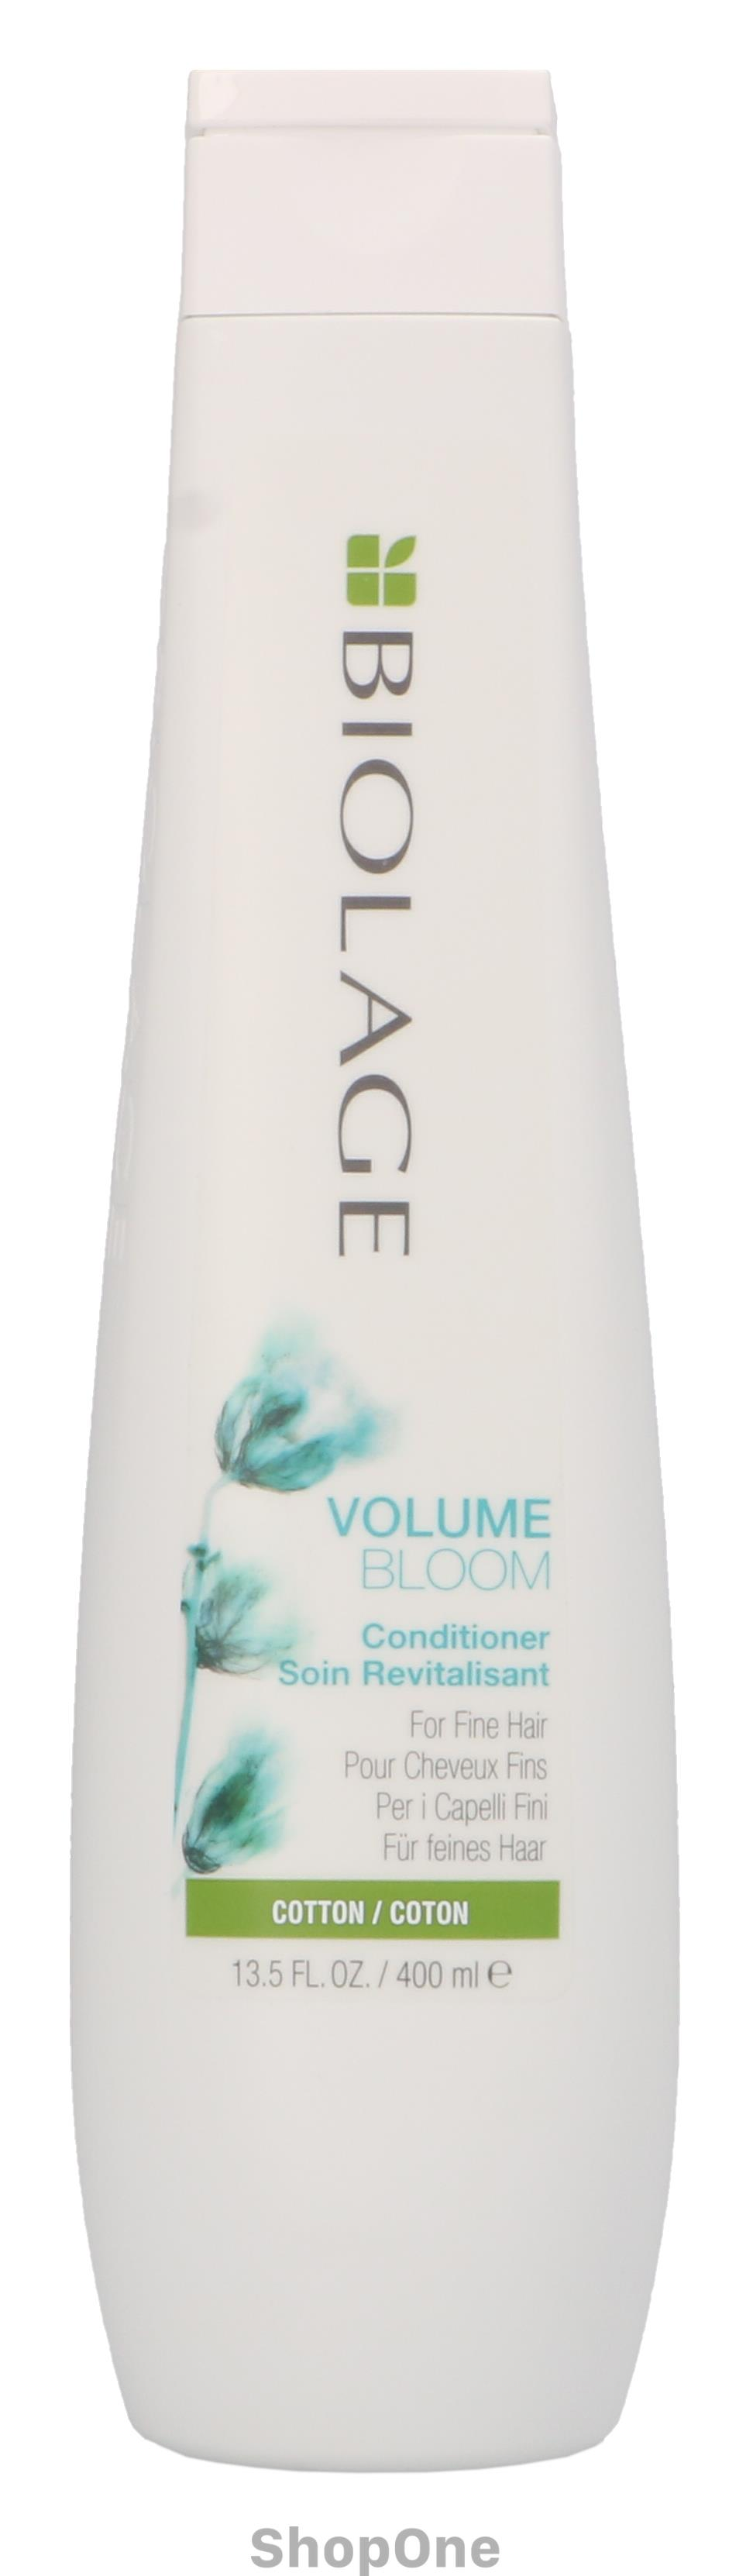 Image of   Biolage Volumebloom Conditioner 400 ml fra Matrix